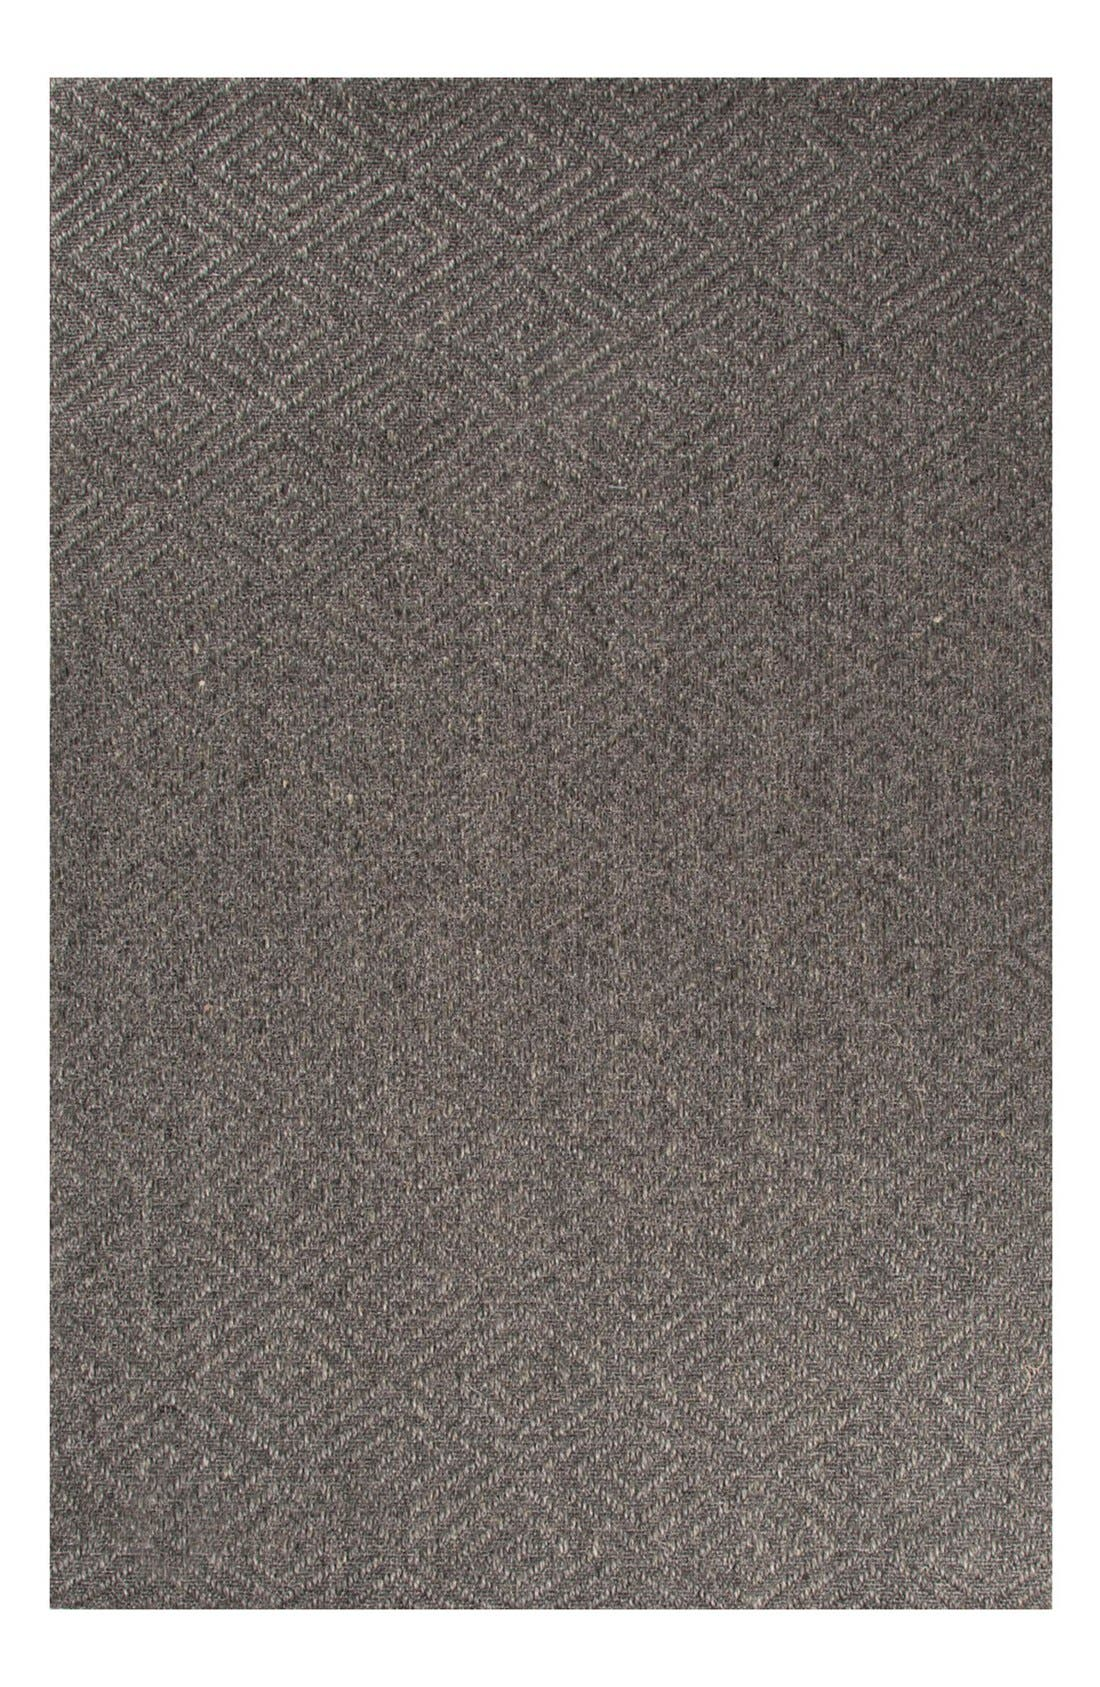 Alternate Image 1 Selected - Jaipur 'Tobago Naturals' Hand Woven Rug